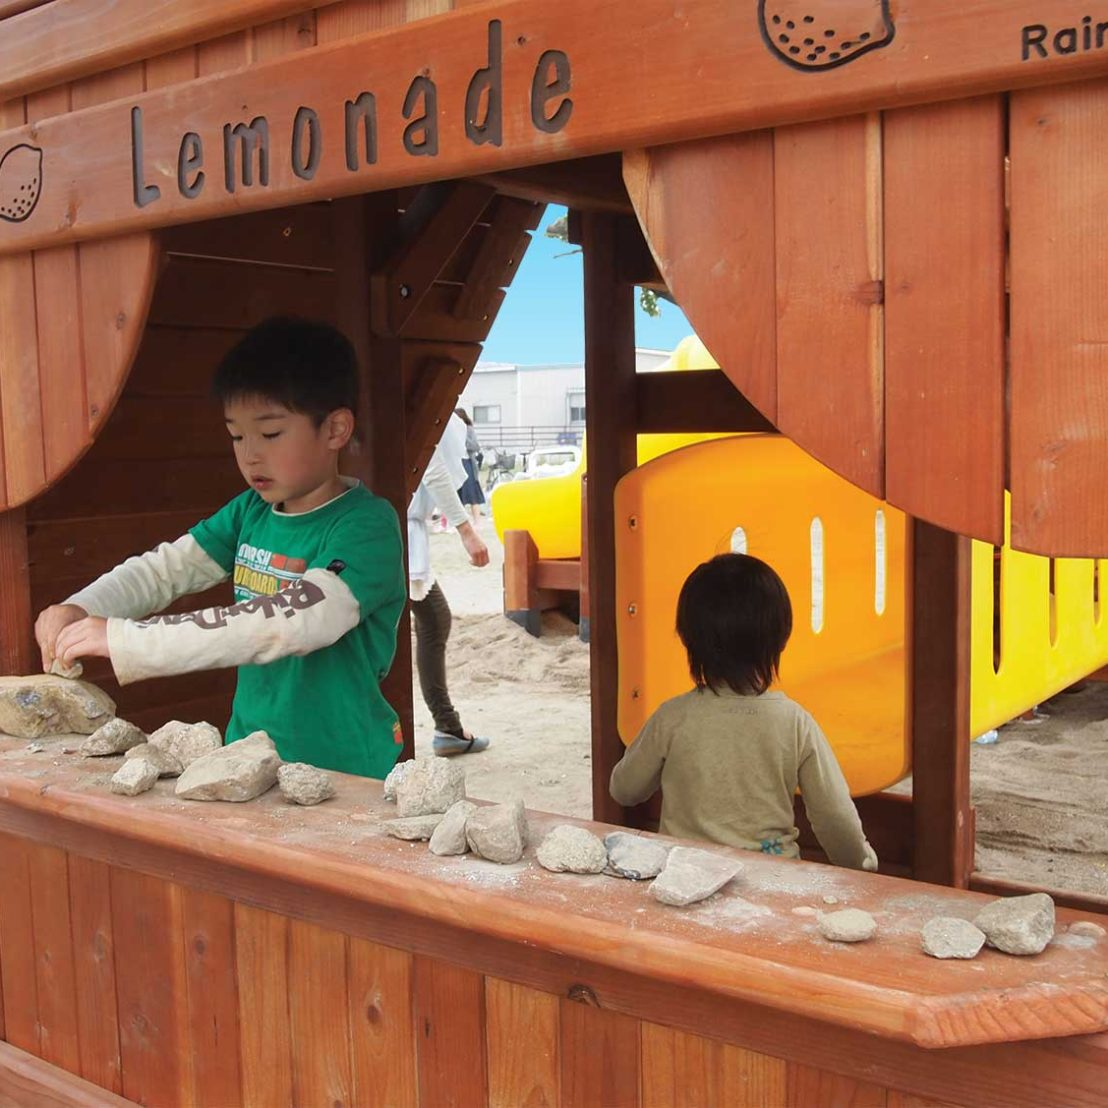 Commercial Lemonade Stand